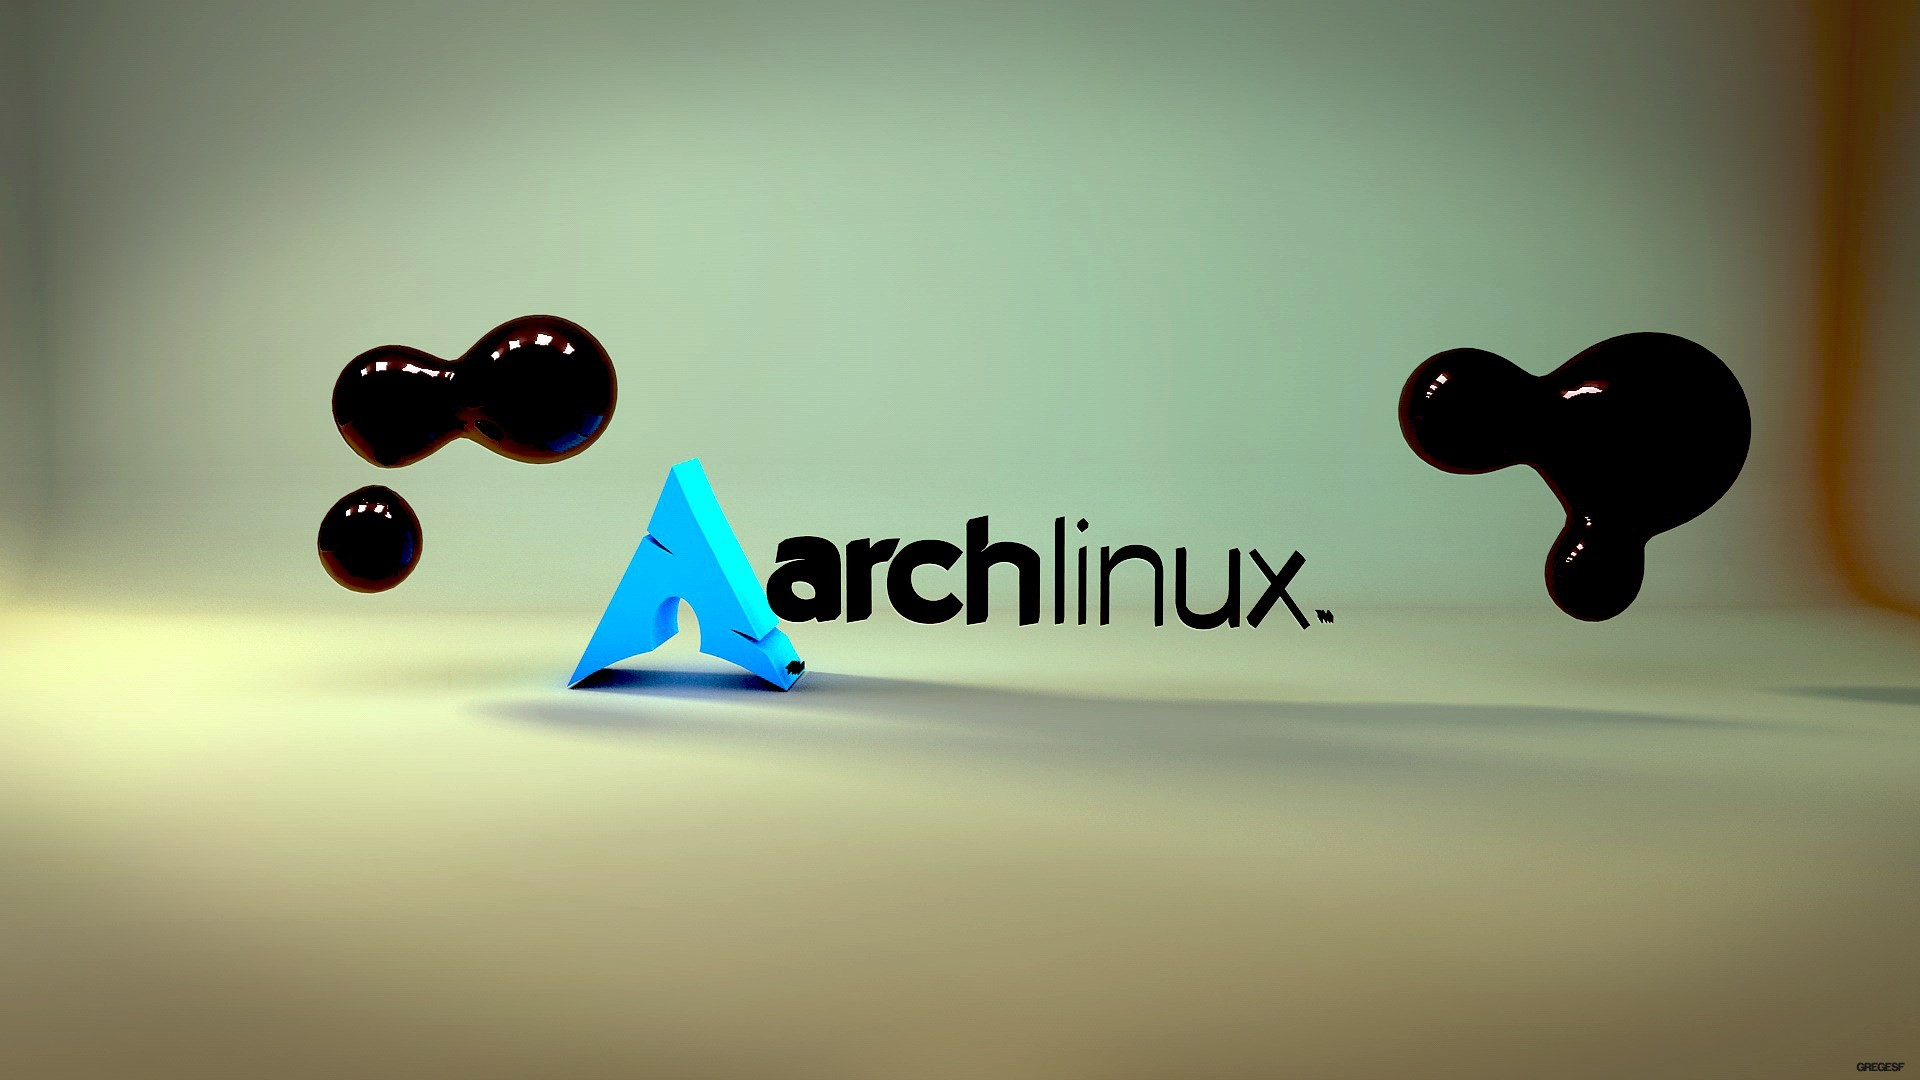 abstract minimalistic Linux arch HD Wallpaper